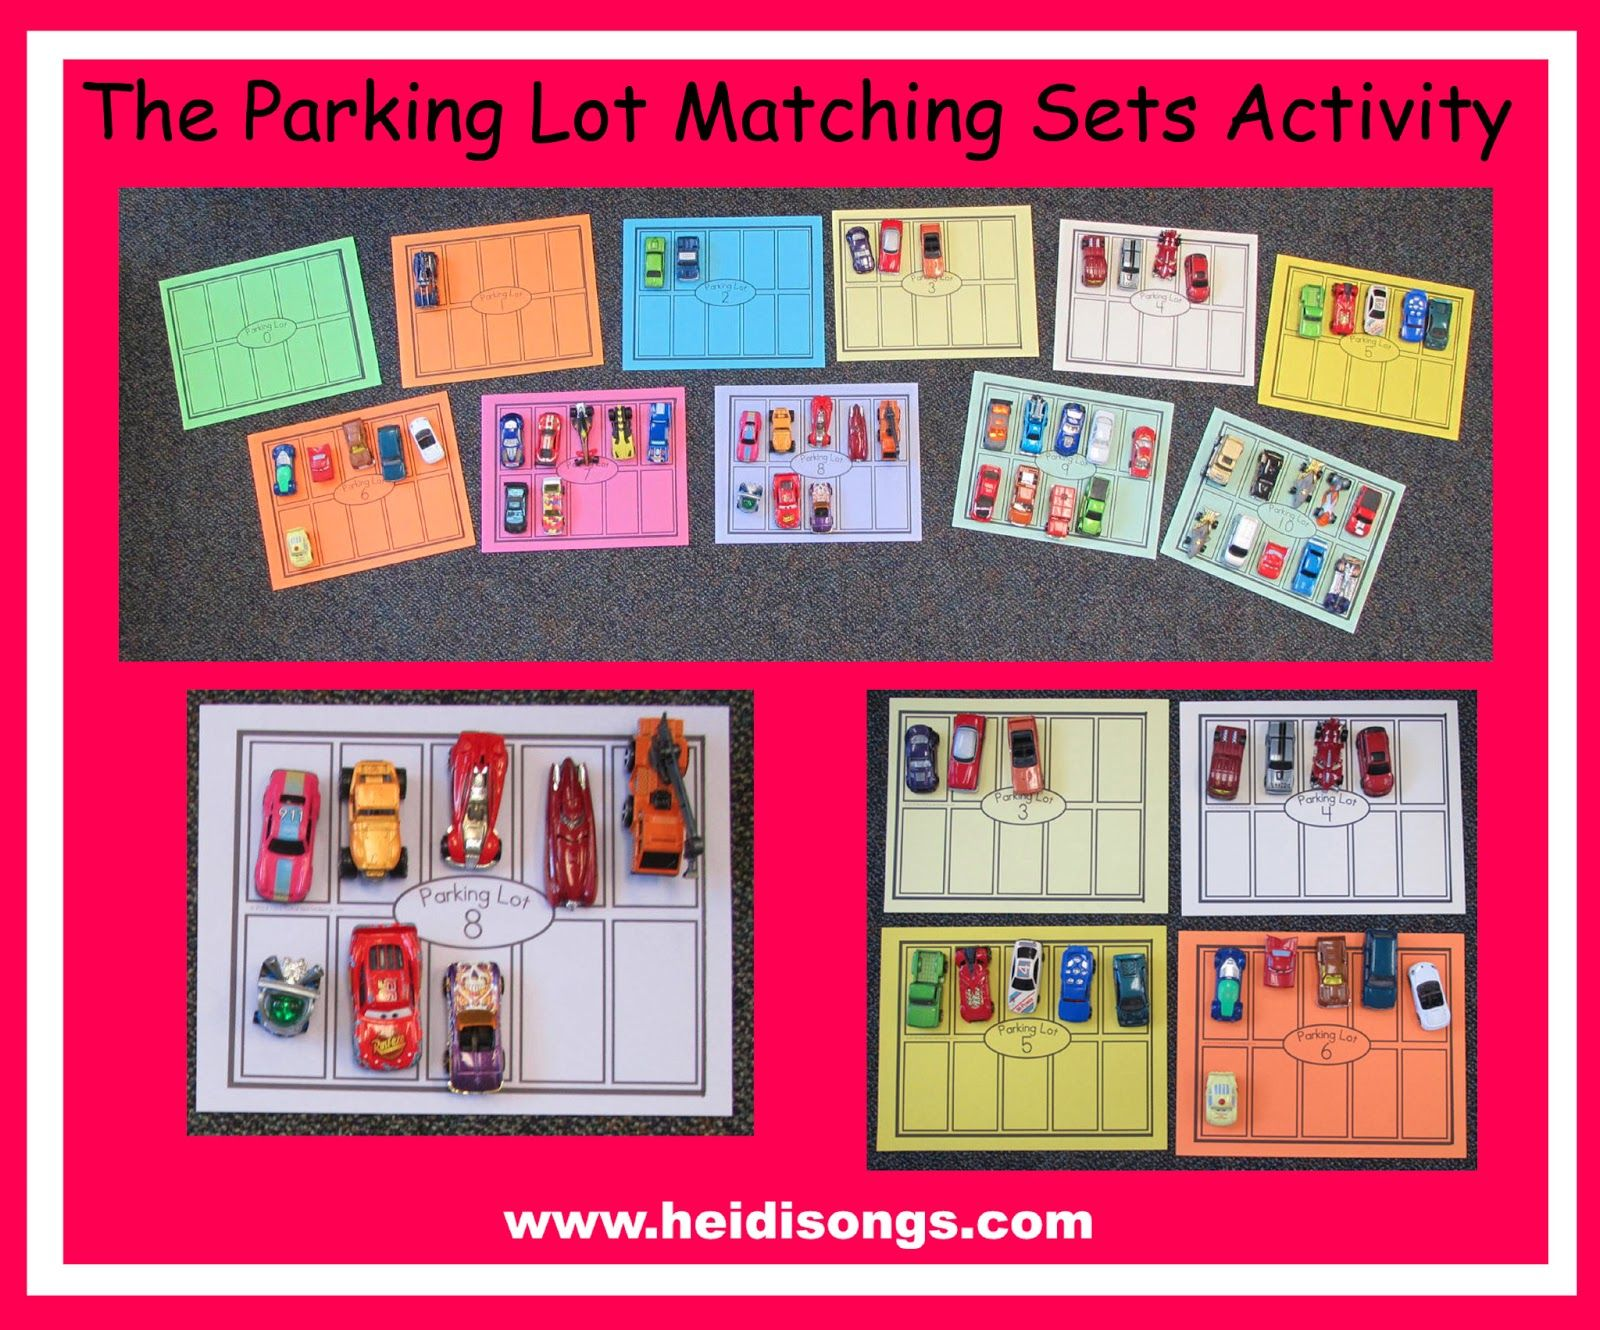 Parking Lot Matching Sets Activity With Free Printable